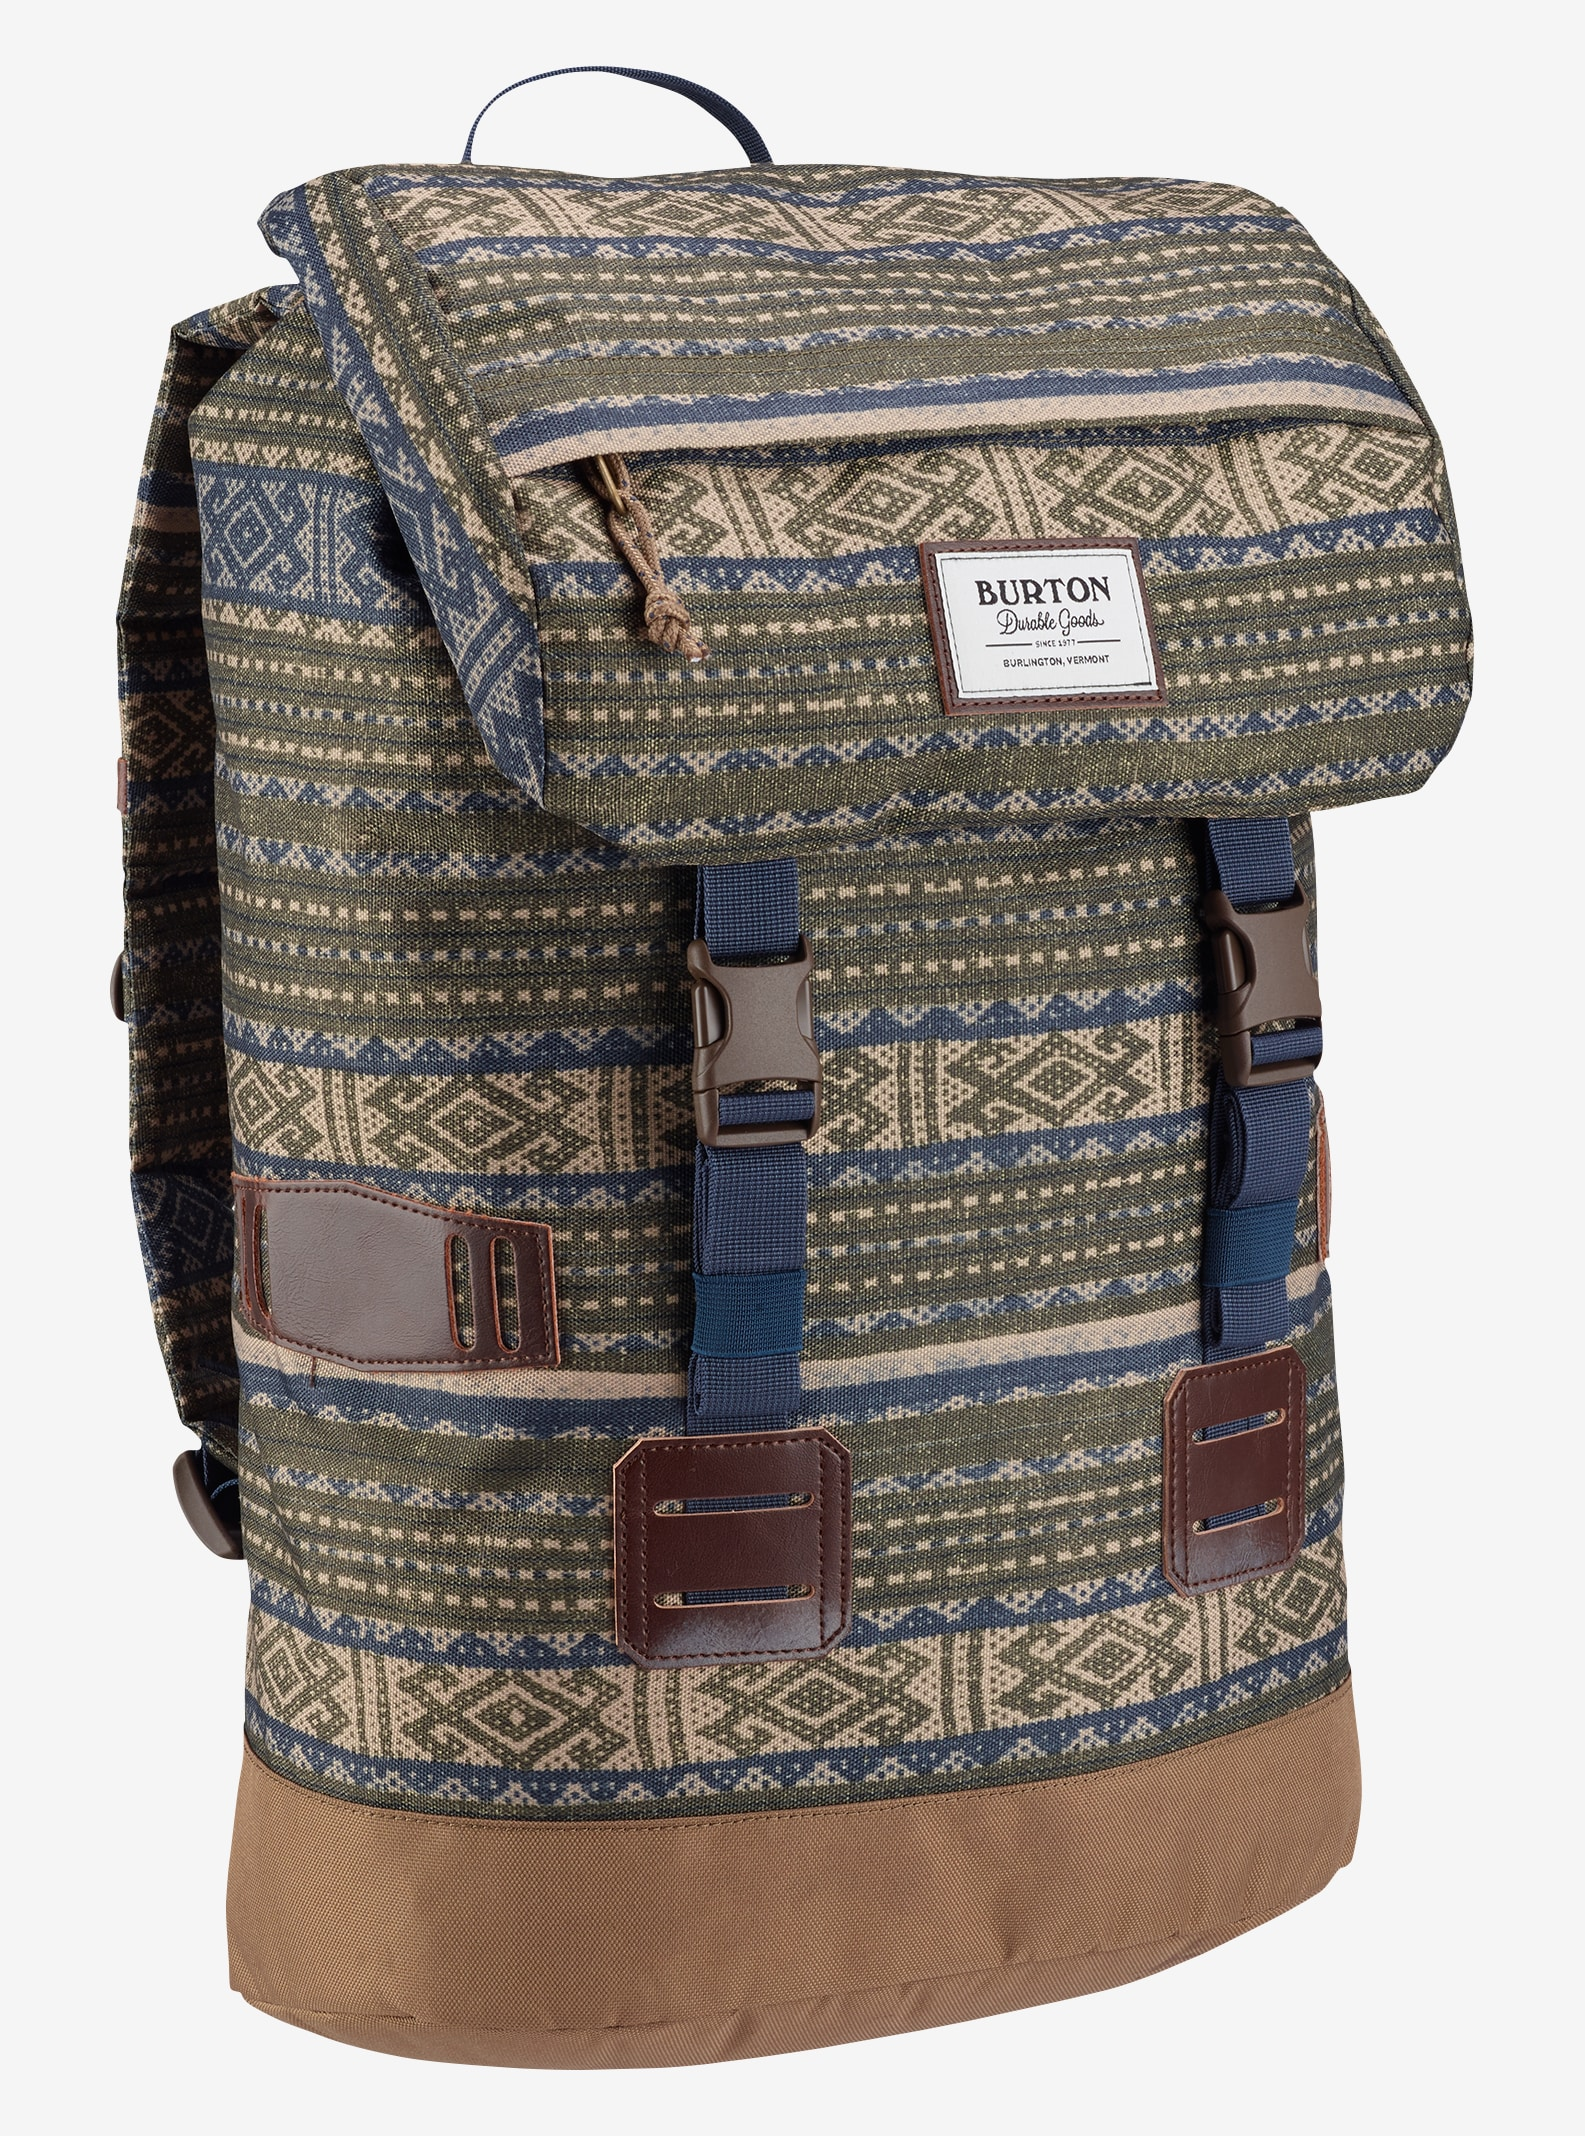 Burton Tinder Backpack shown in Tanimbar Print